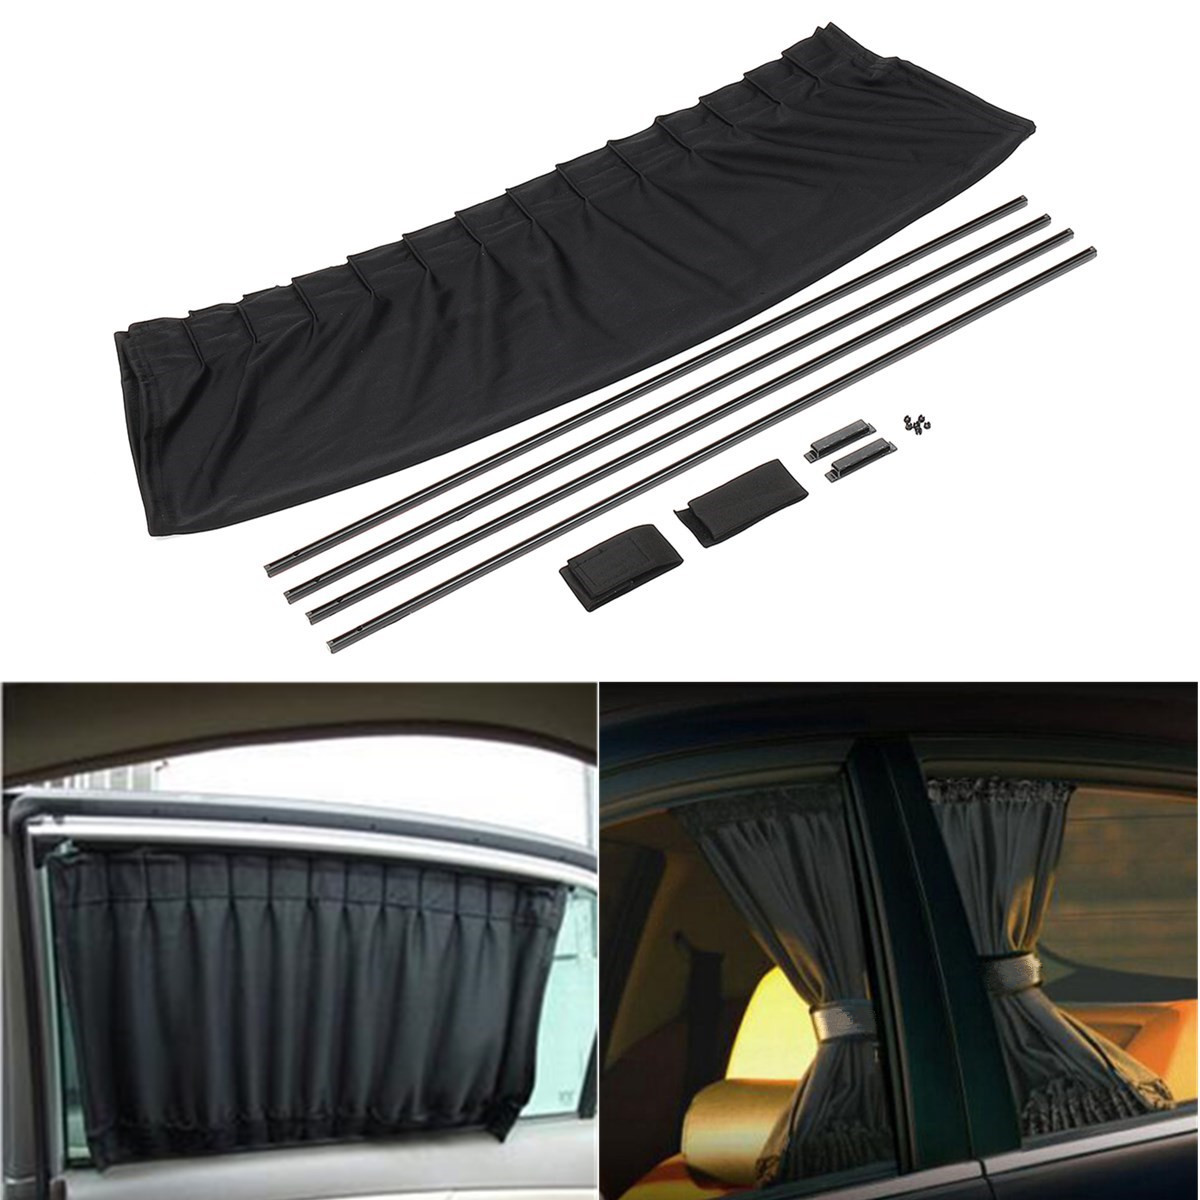 2pcs 70x49cm Adjustable Car Window Curtain Sunshade UV Protection Black Universal